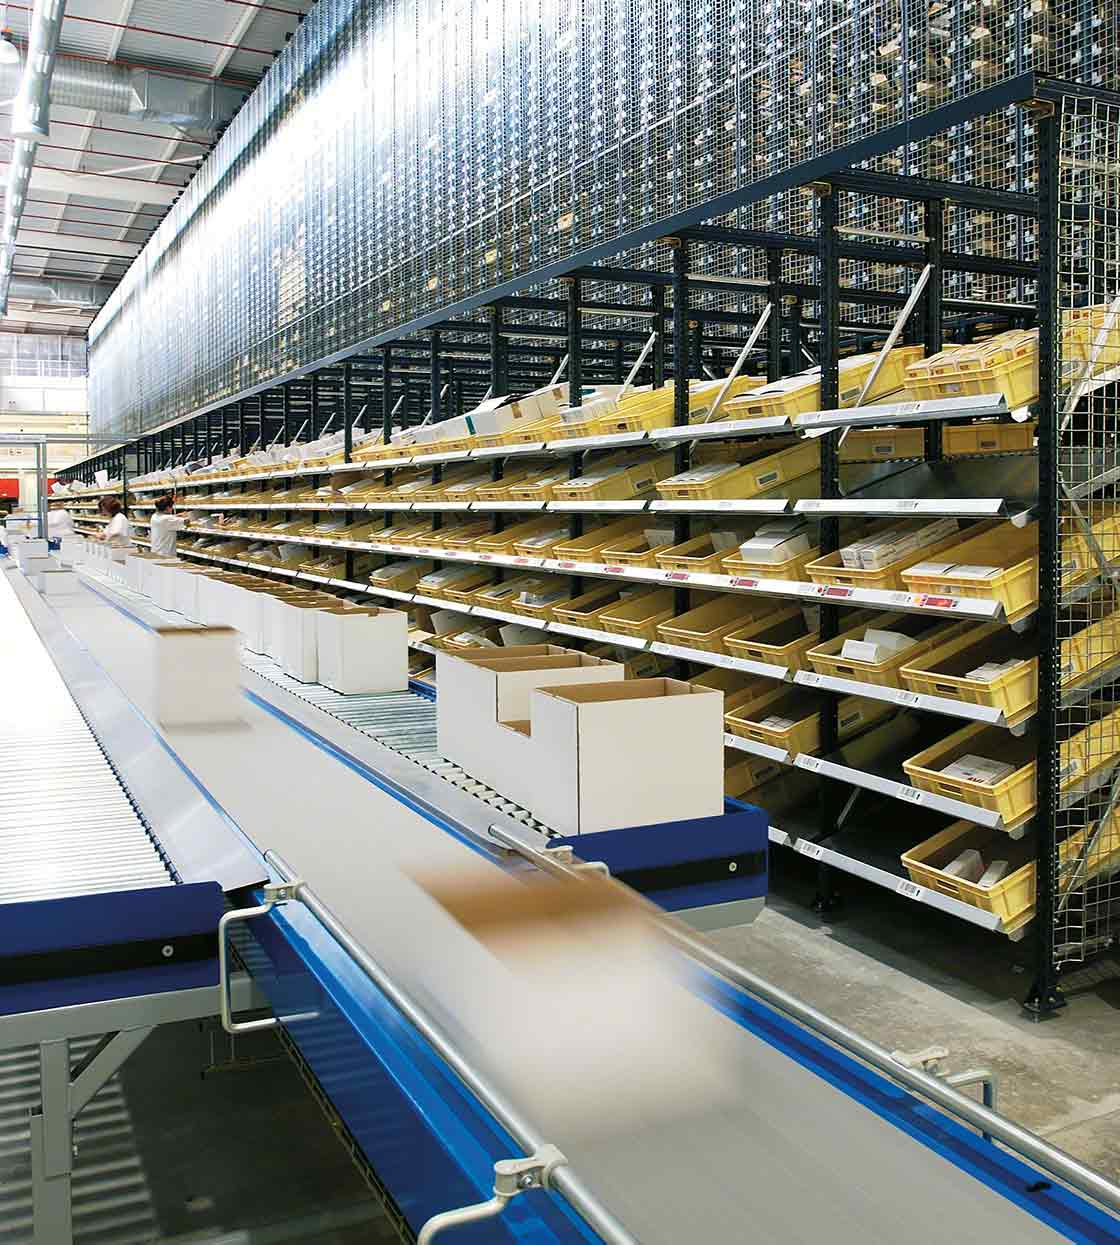 Overview of cardboard flow racking systems in a warehouse